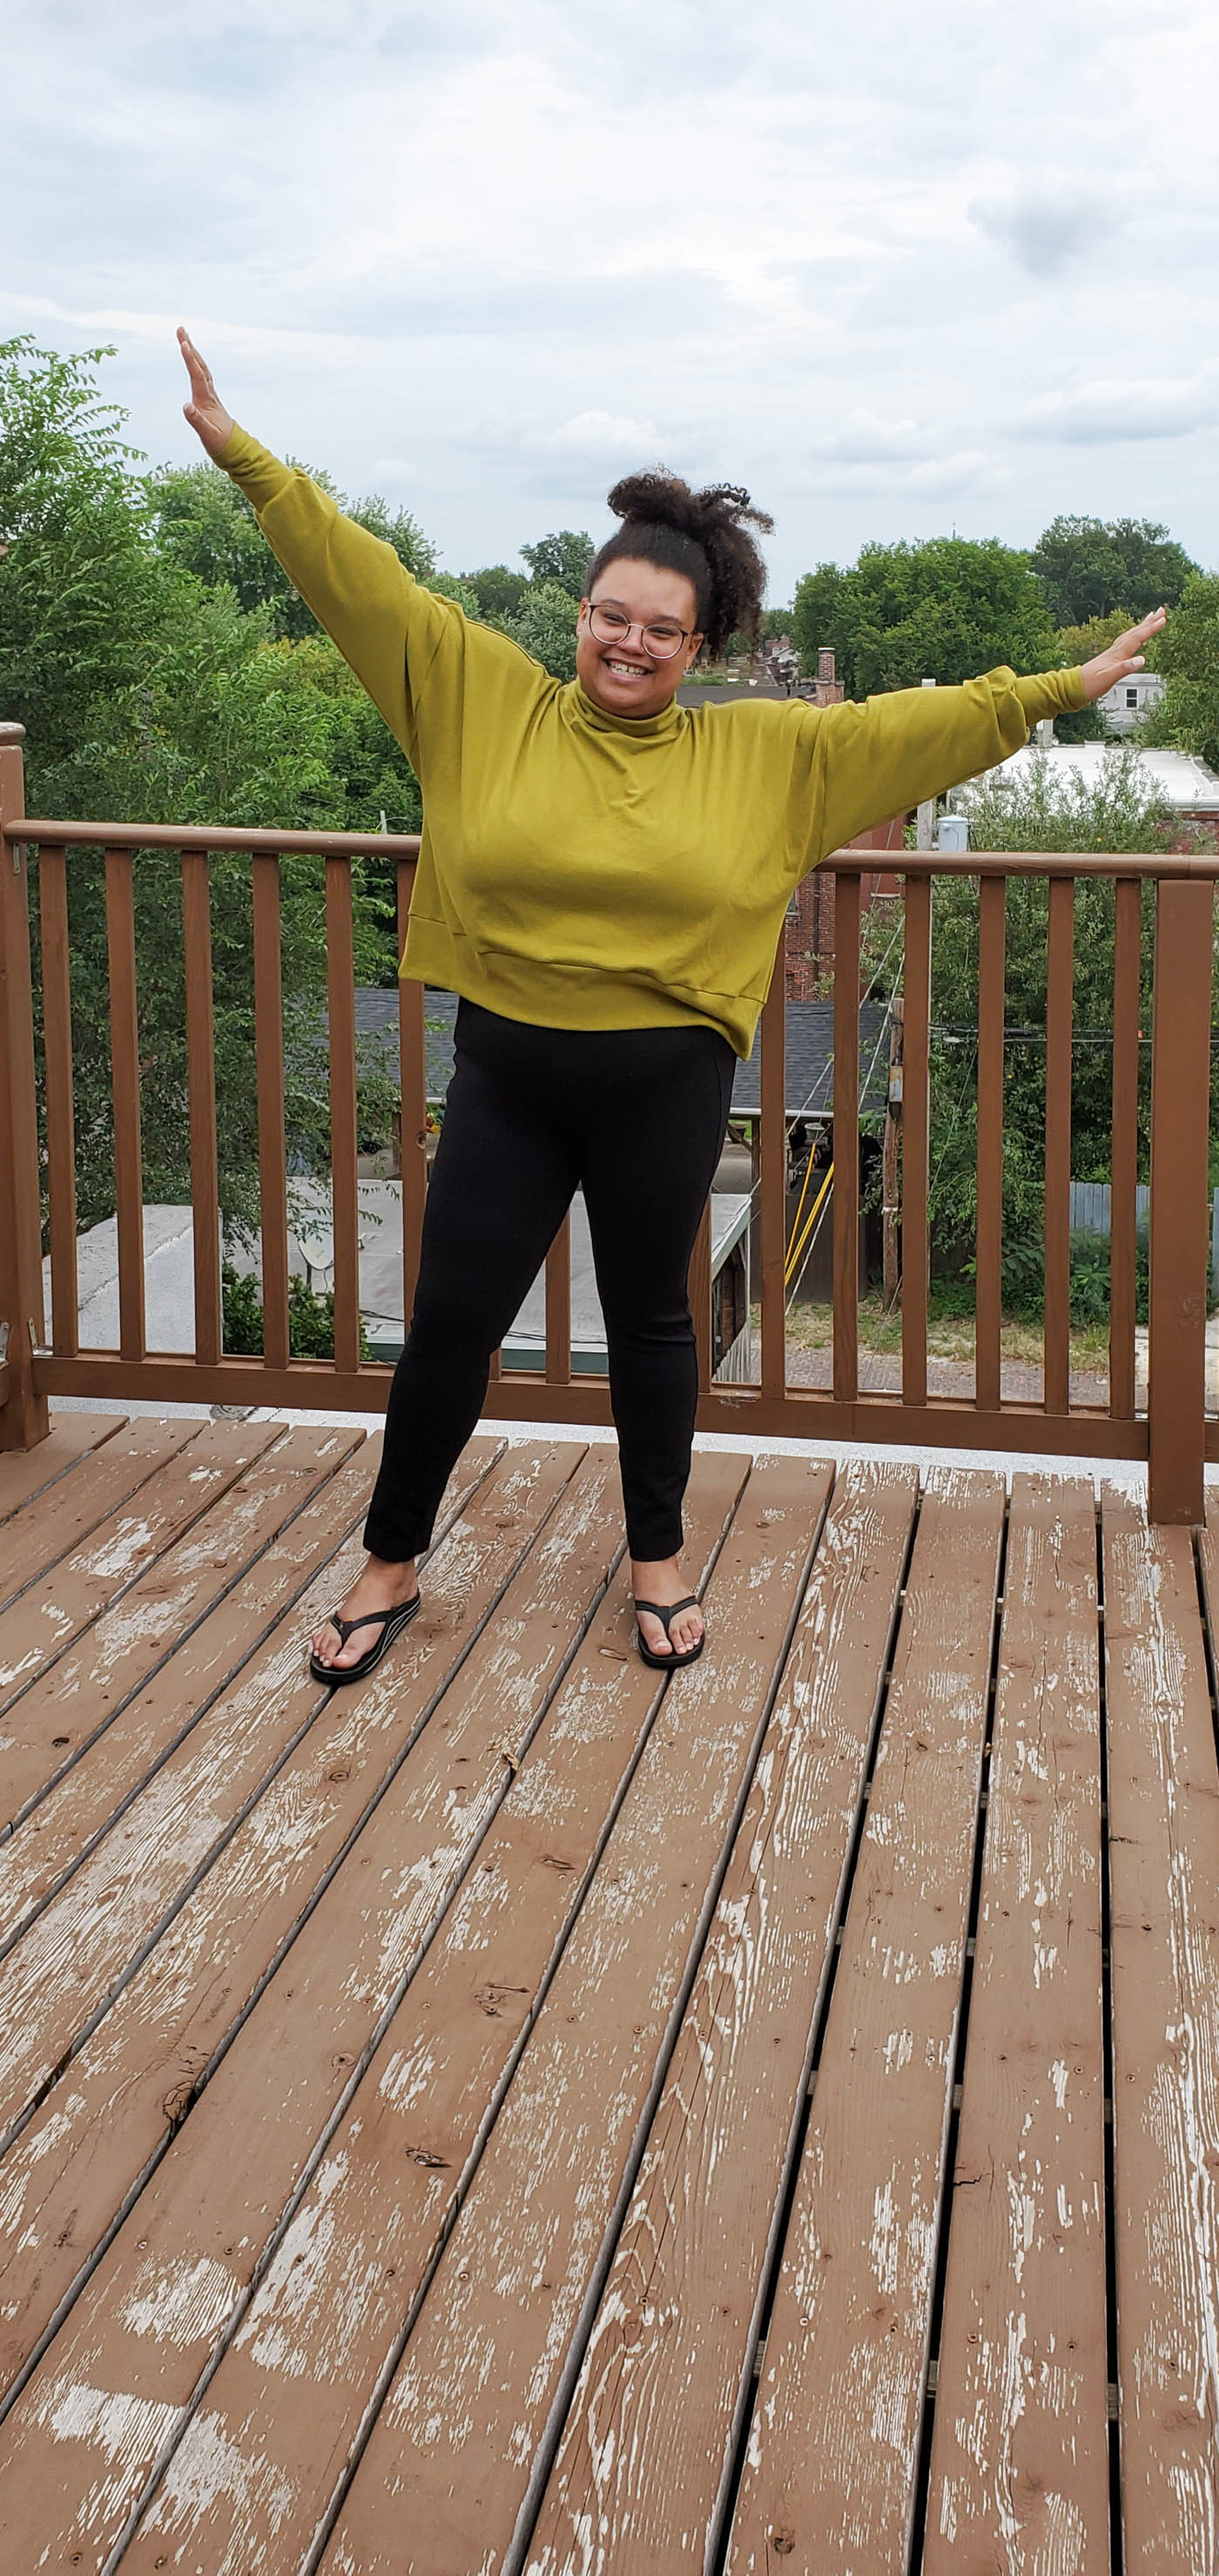 Women wearing a Hosta Tee long sleeve in Bamboo Cotton Stretch Rib in Chartreuse and black jeans..  Women is standing on an outdoor patio in the city with cloudy blue skies and her arms raised up in a V.